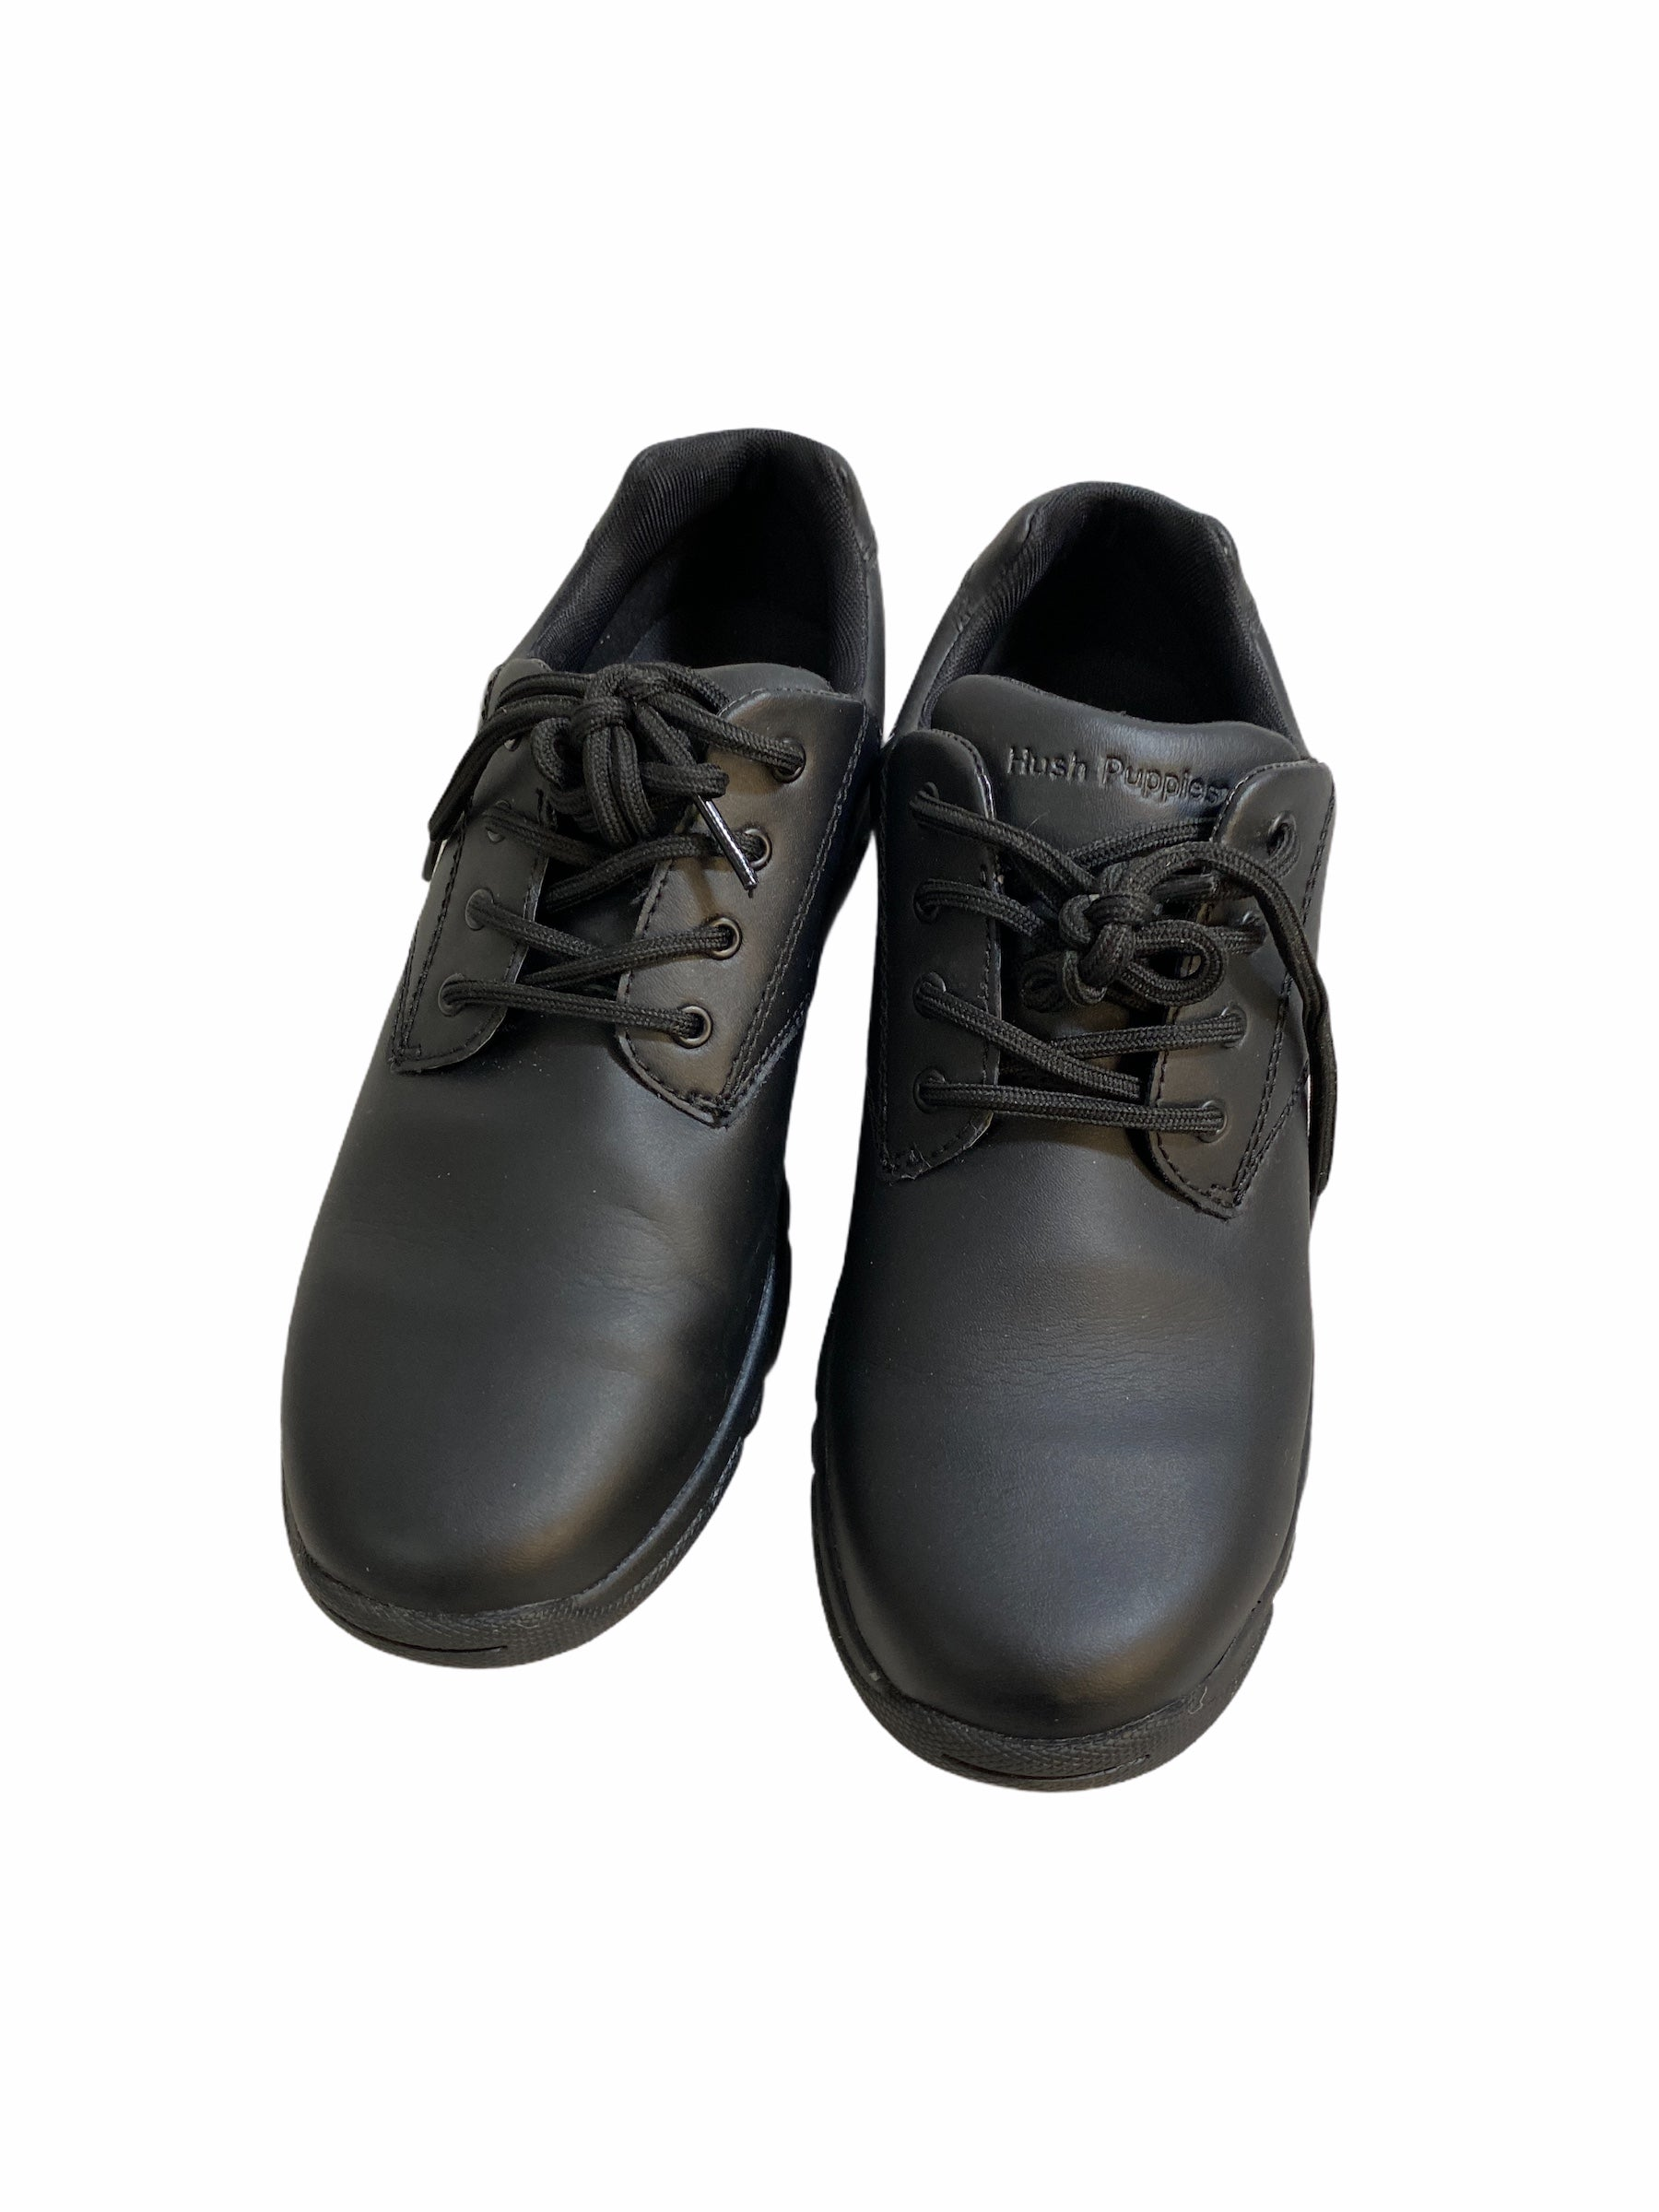 Hush Puppies Black Dress Shoes (Size 5Y)